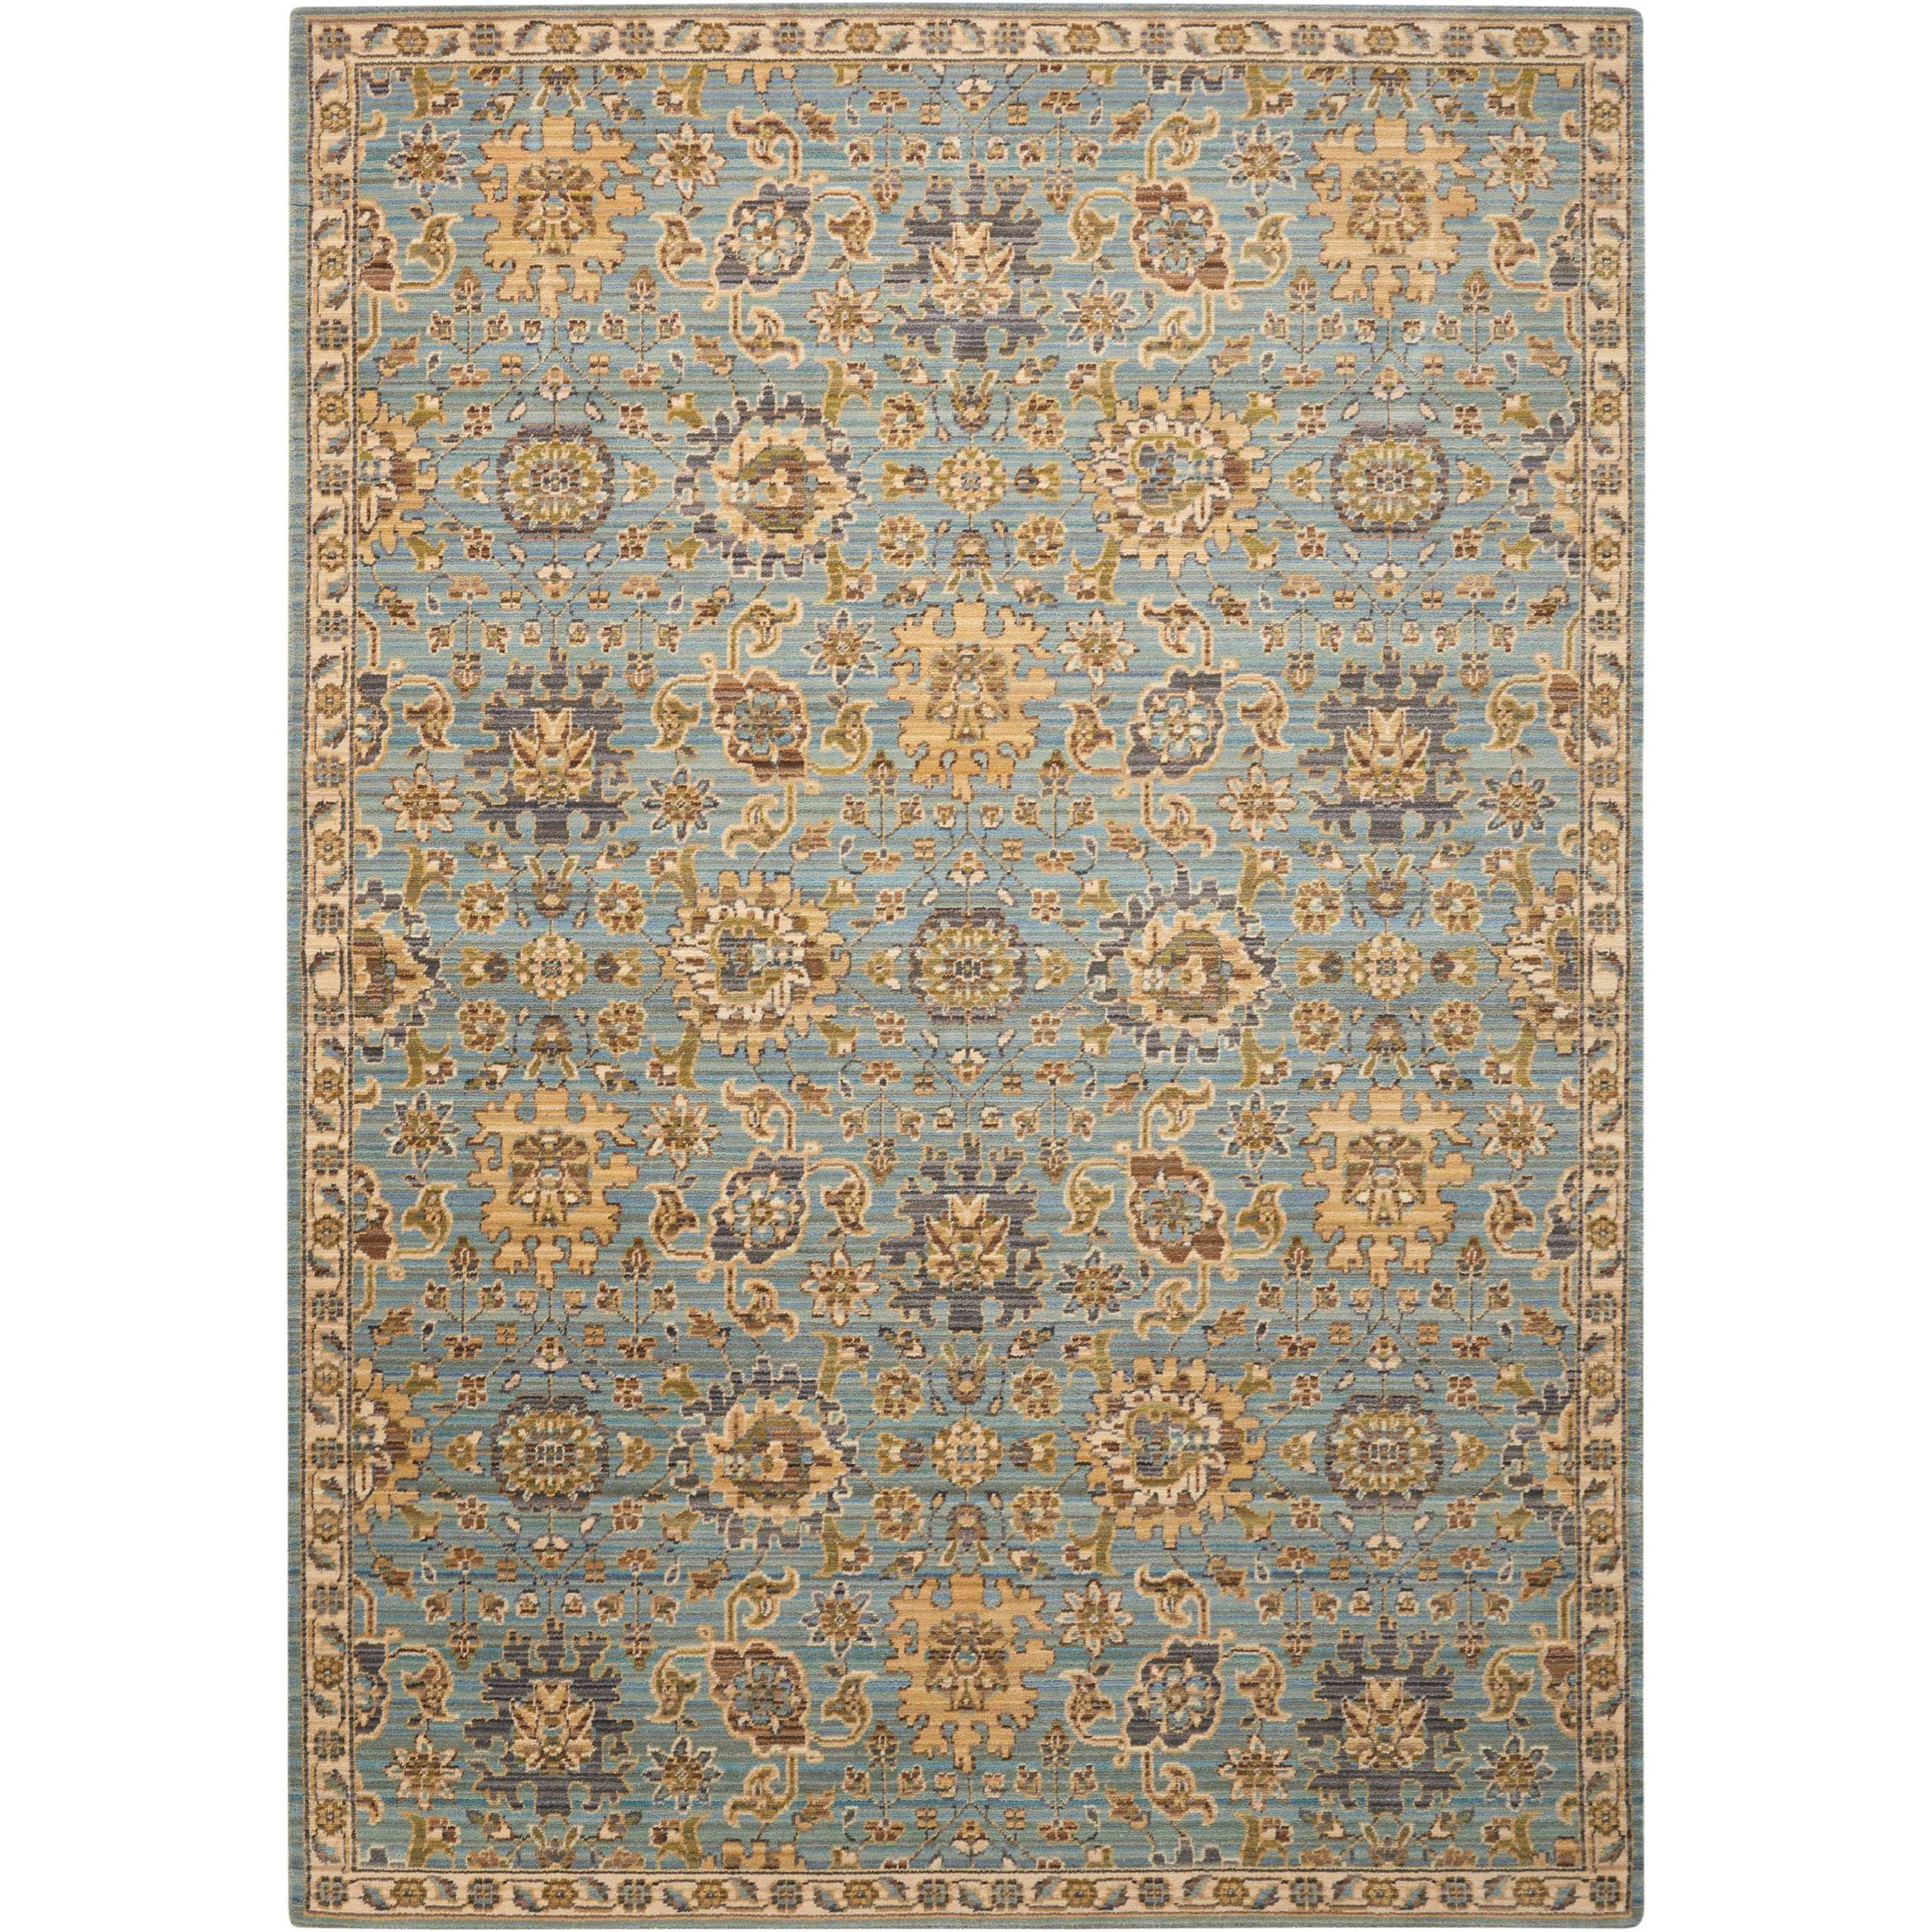 Timeless 12' x 15' Light Blue Rectangle Rug by Nourison at Sprintz Furniture